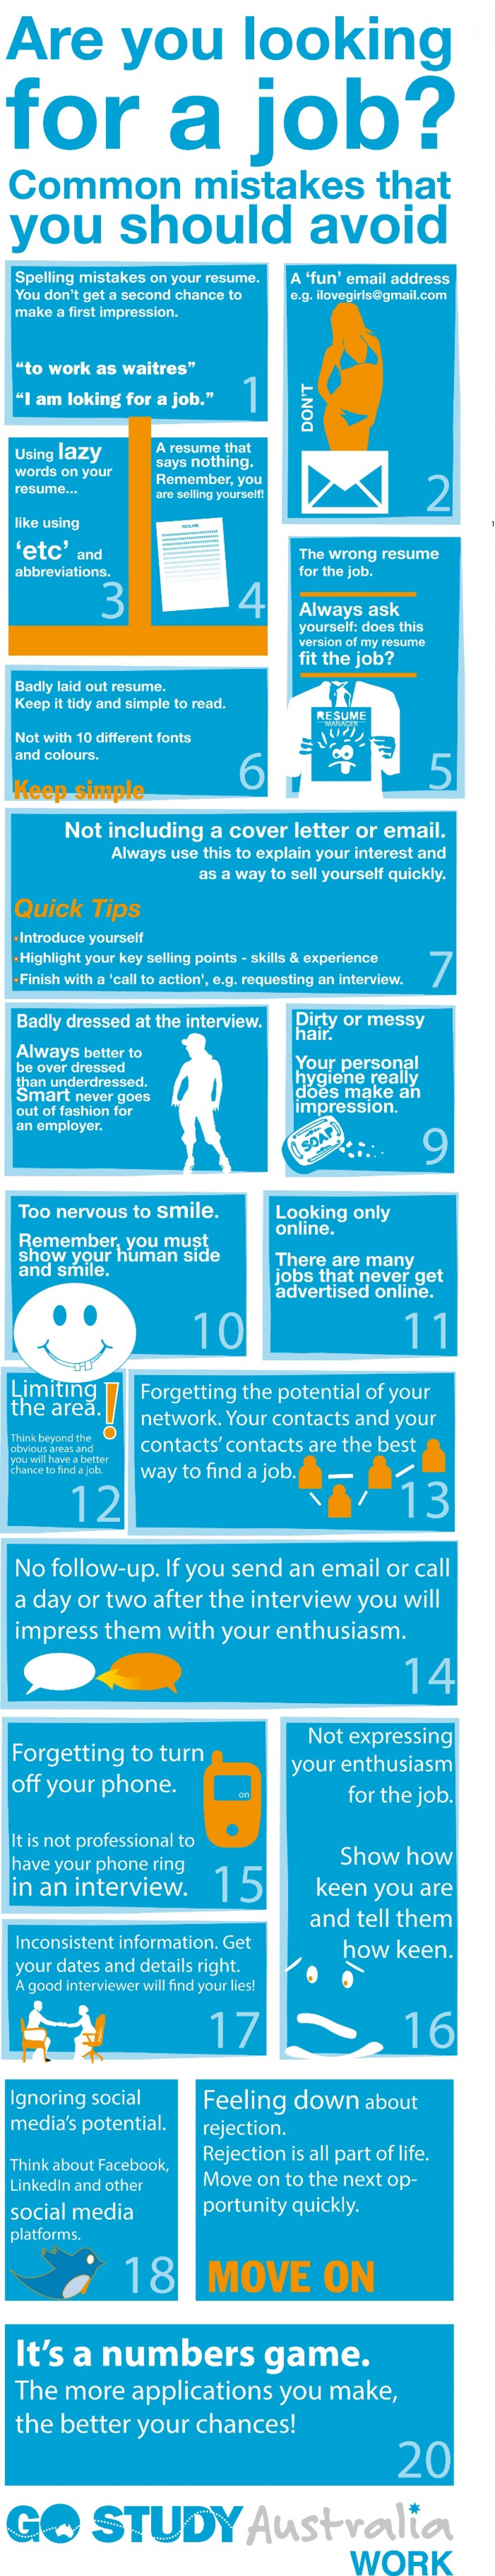 Mistakes That You Should Avoid in CV Infographic